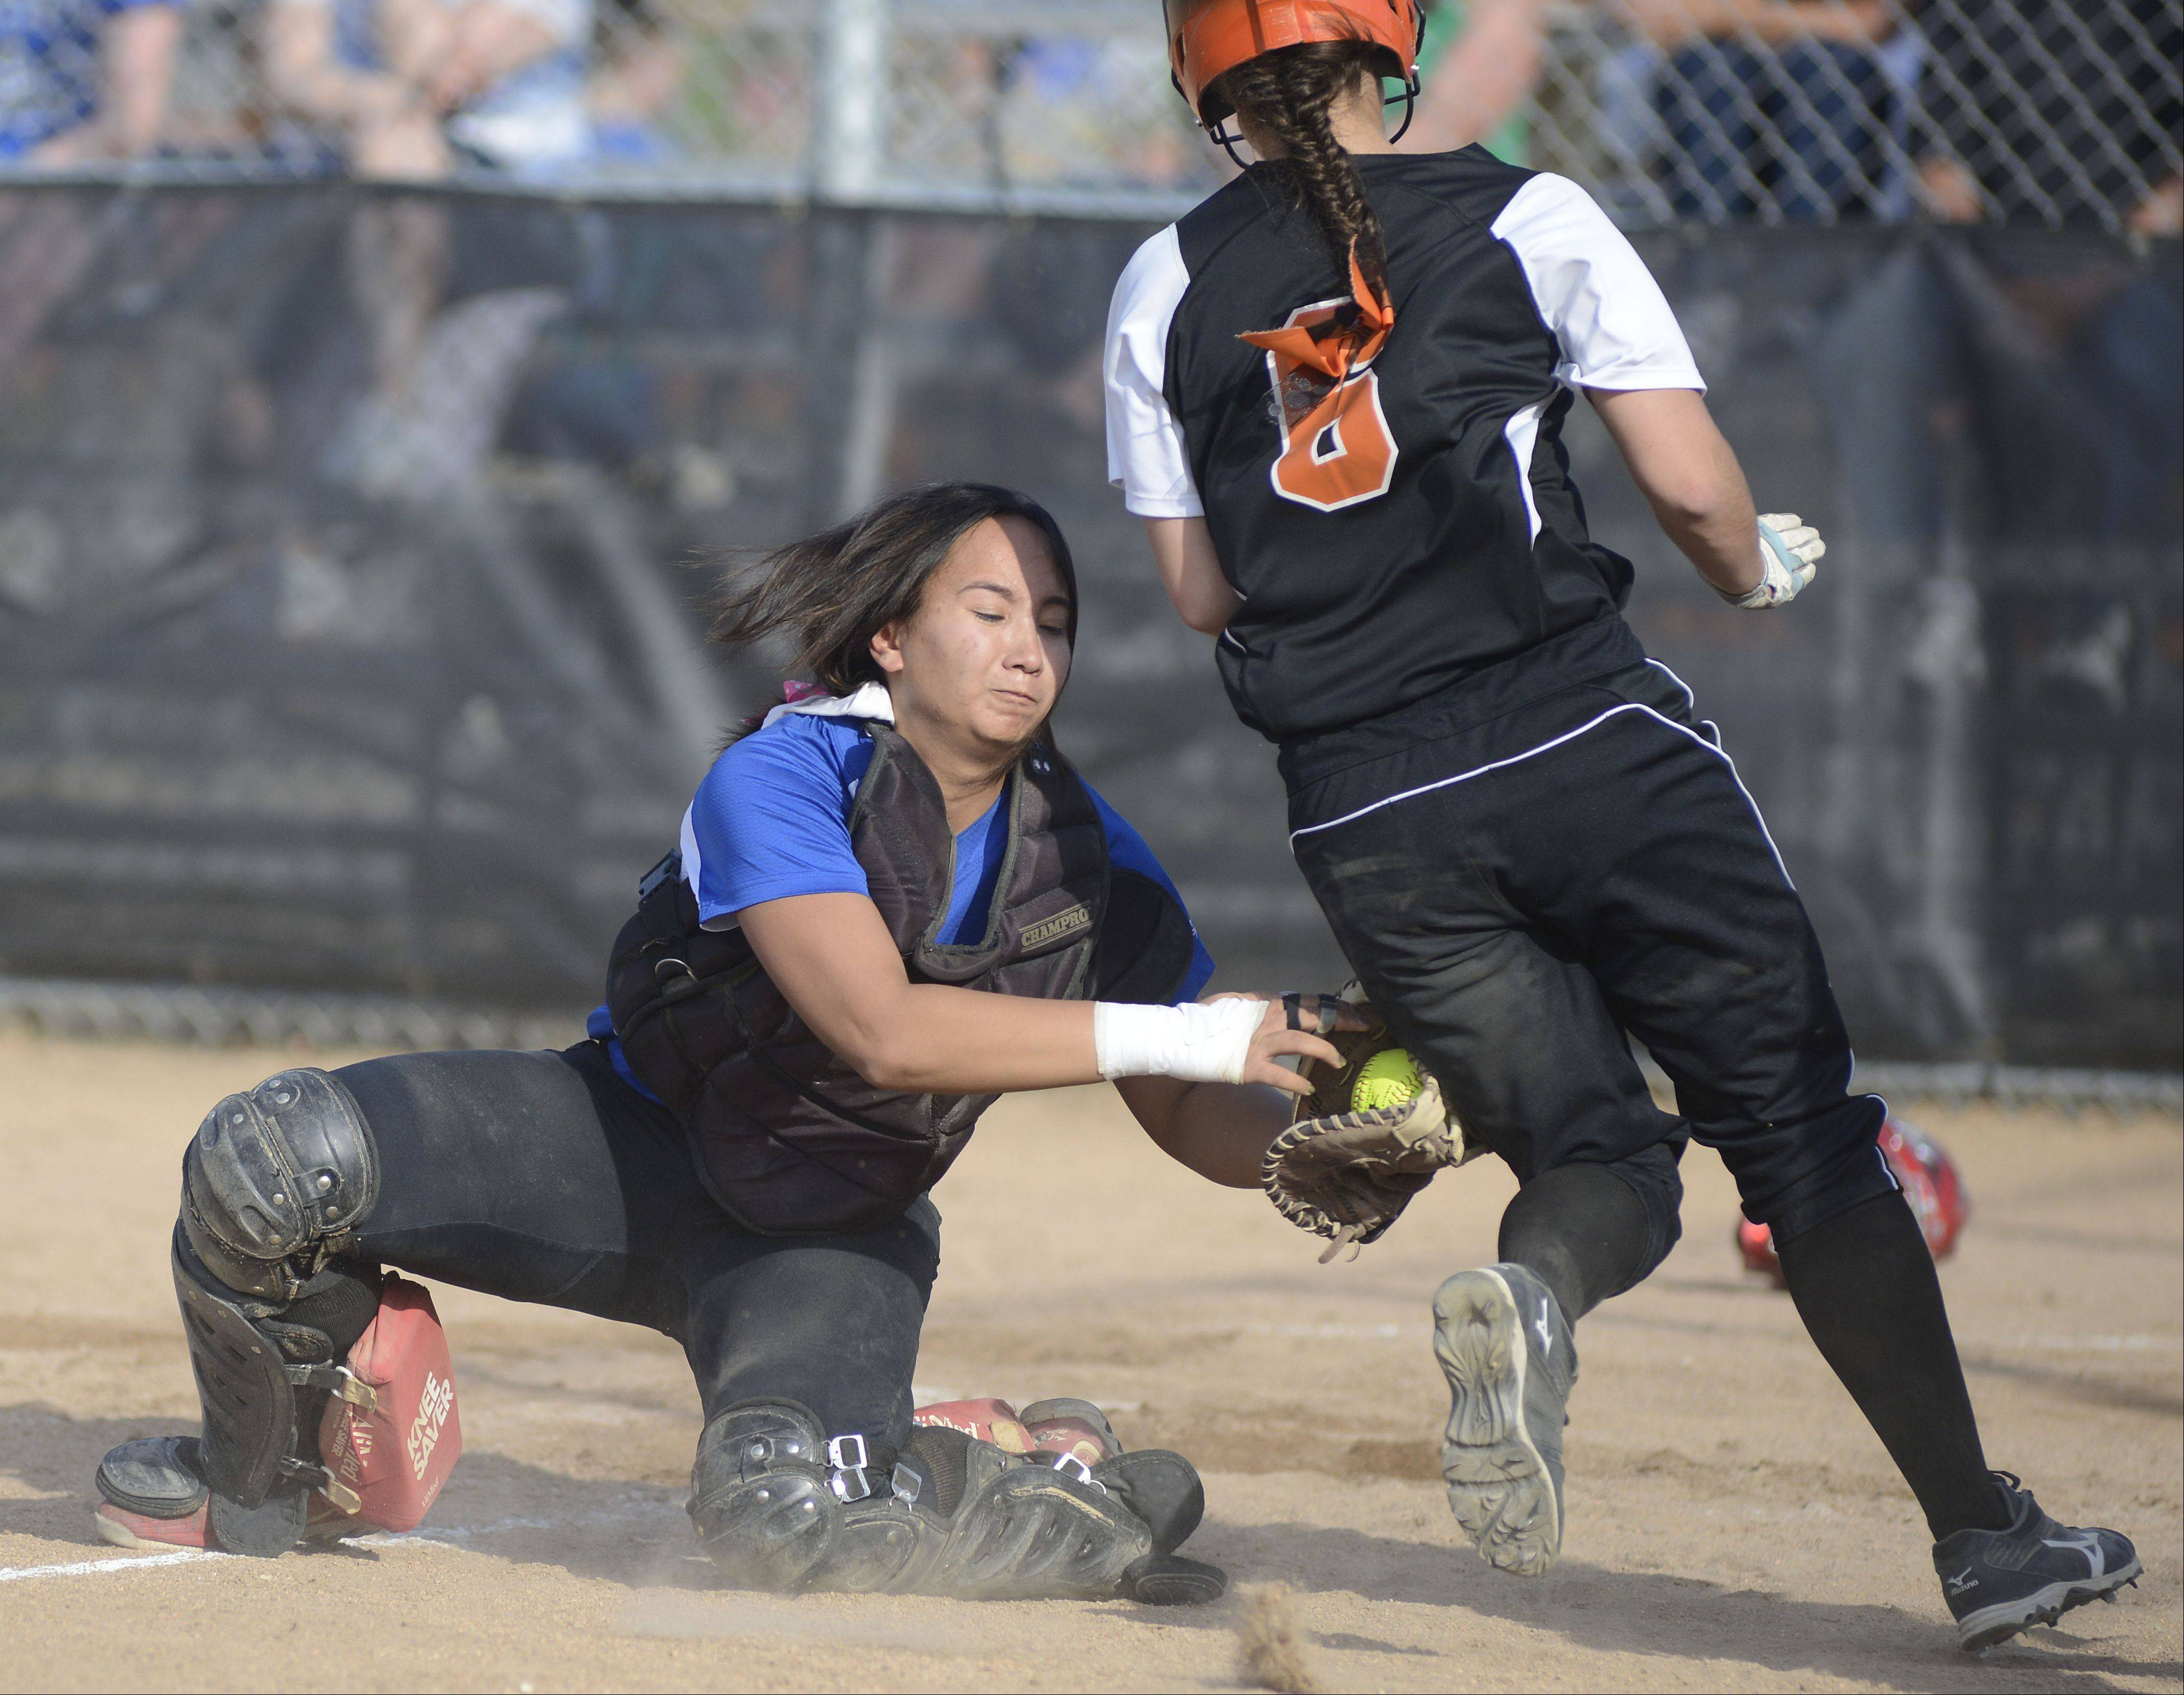 St. Charles East�s Olivia Cheatham is tagged out at home plate by Geneva catcher Kelly Gordon in the fourth inning on Tuesday, April 30.